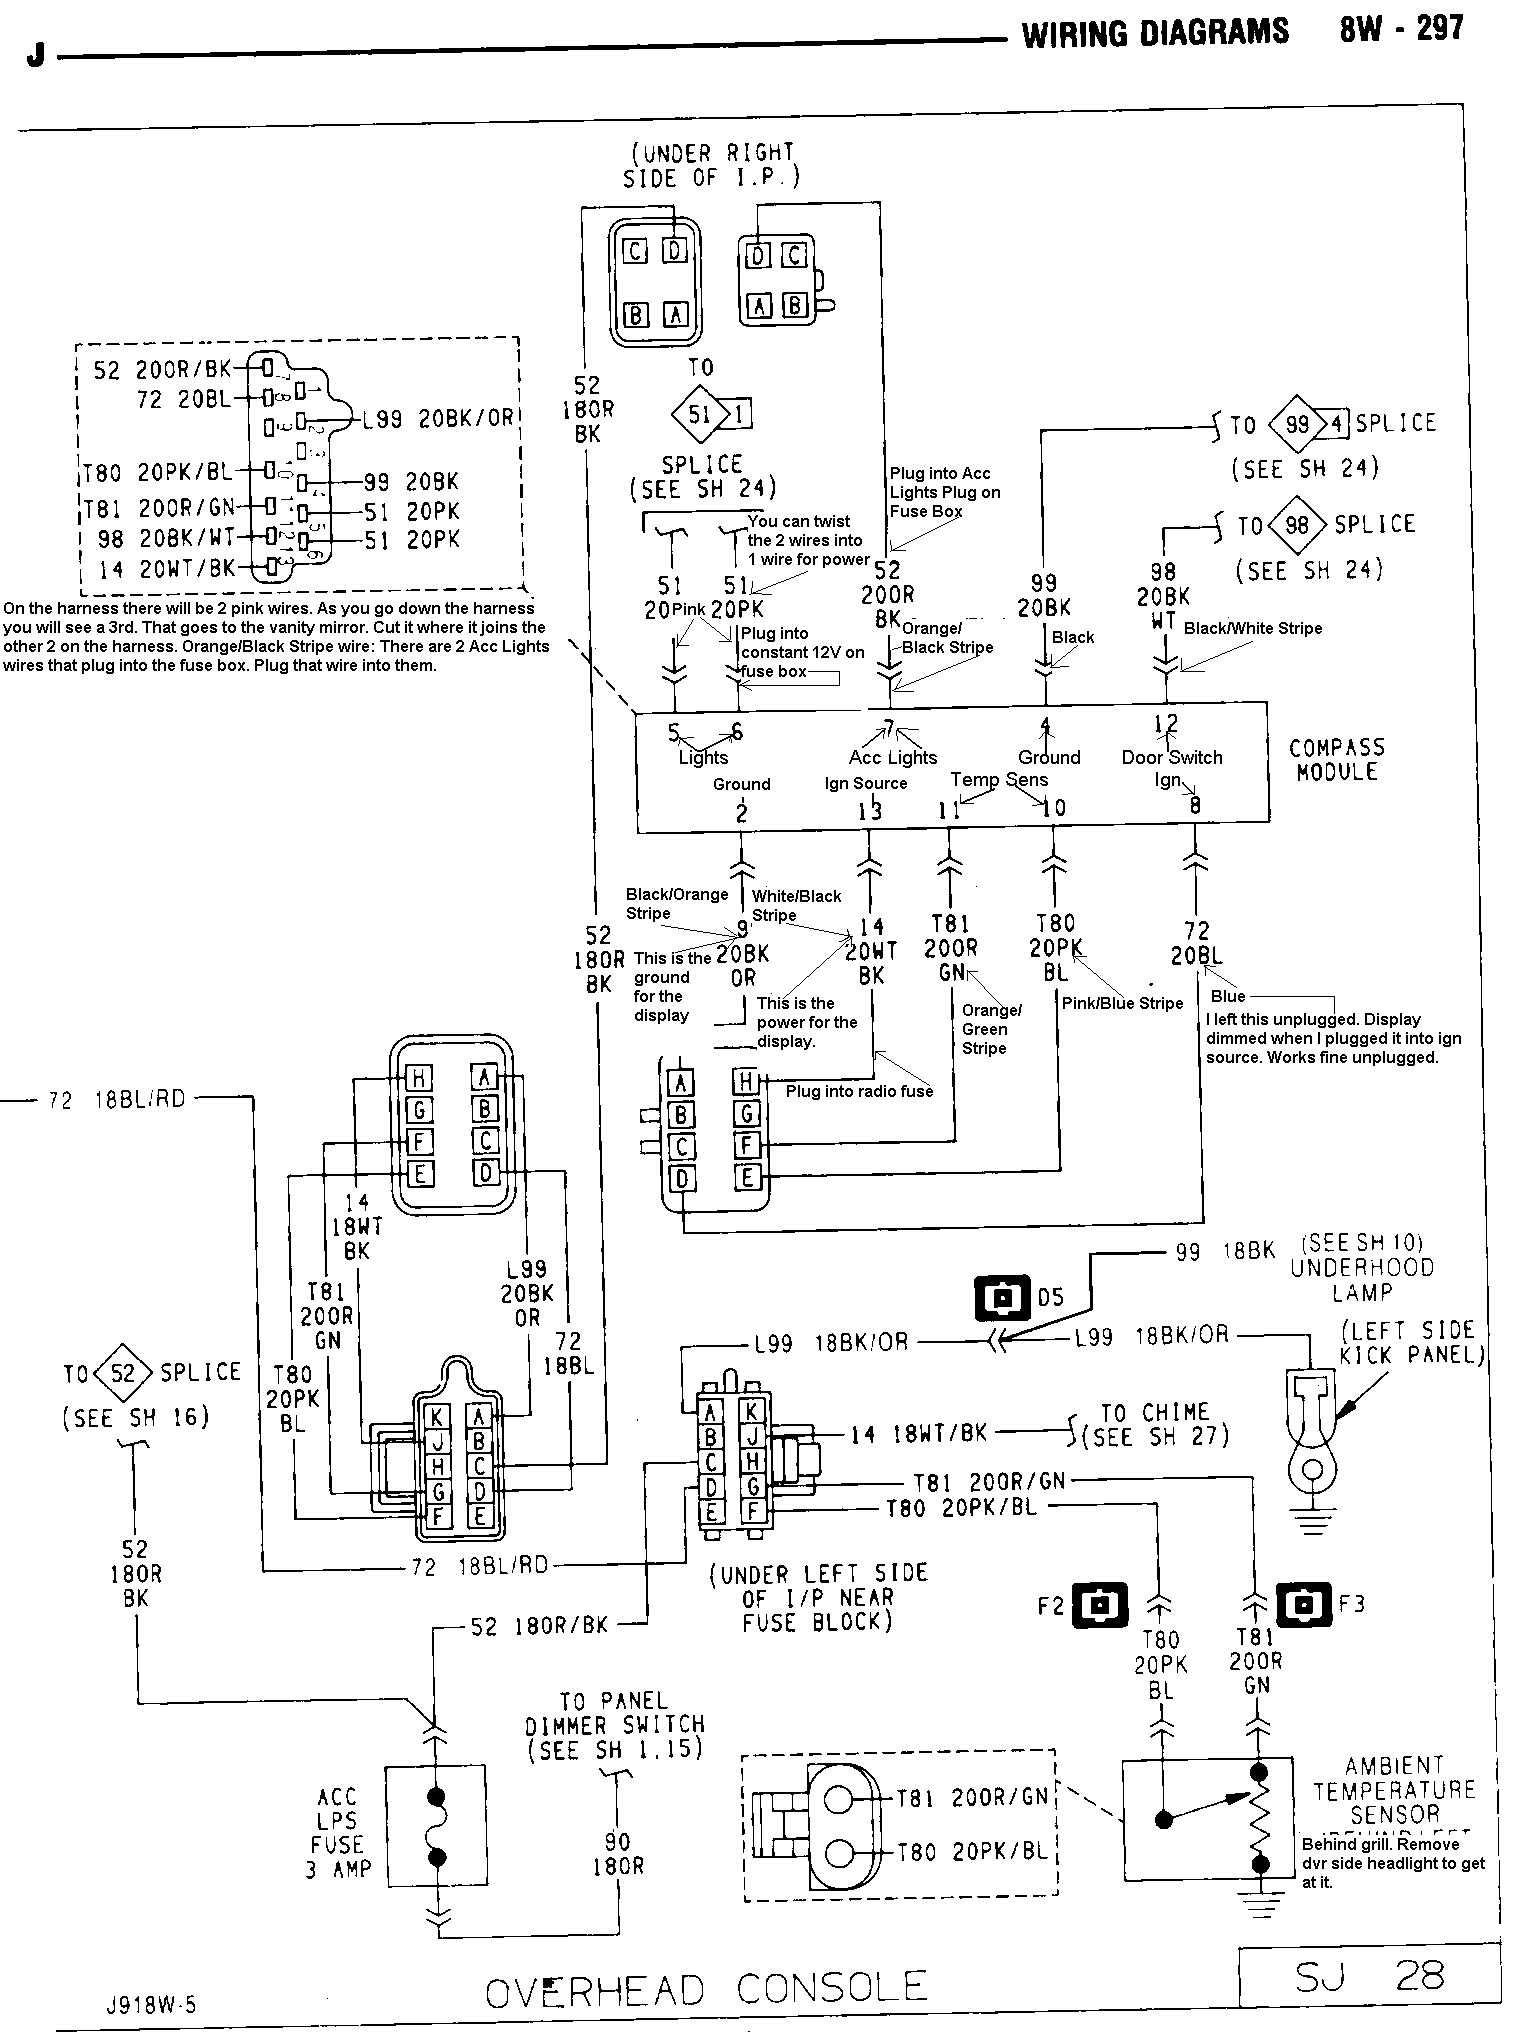 1989 Jeep Cherokee Wiring Diagram Charging System Trusted Fuse Box Location Tom Oljeep Collins Fsj Page 91